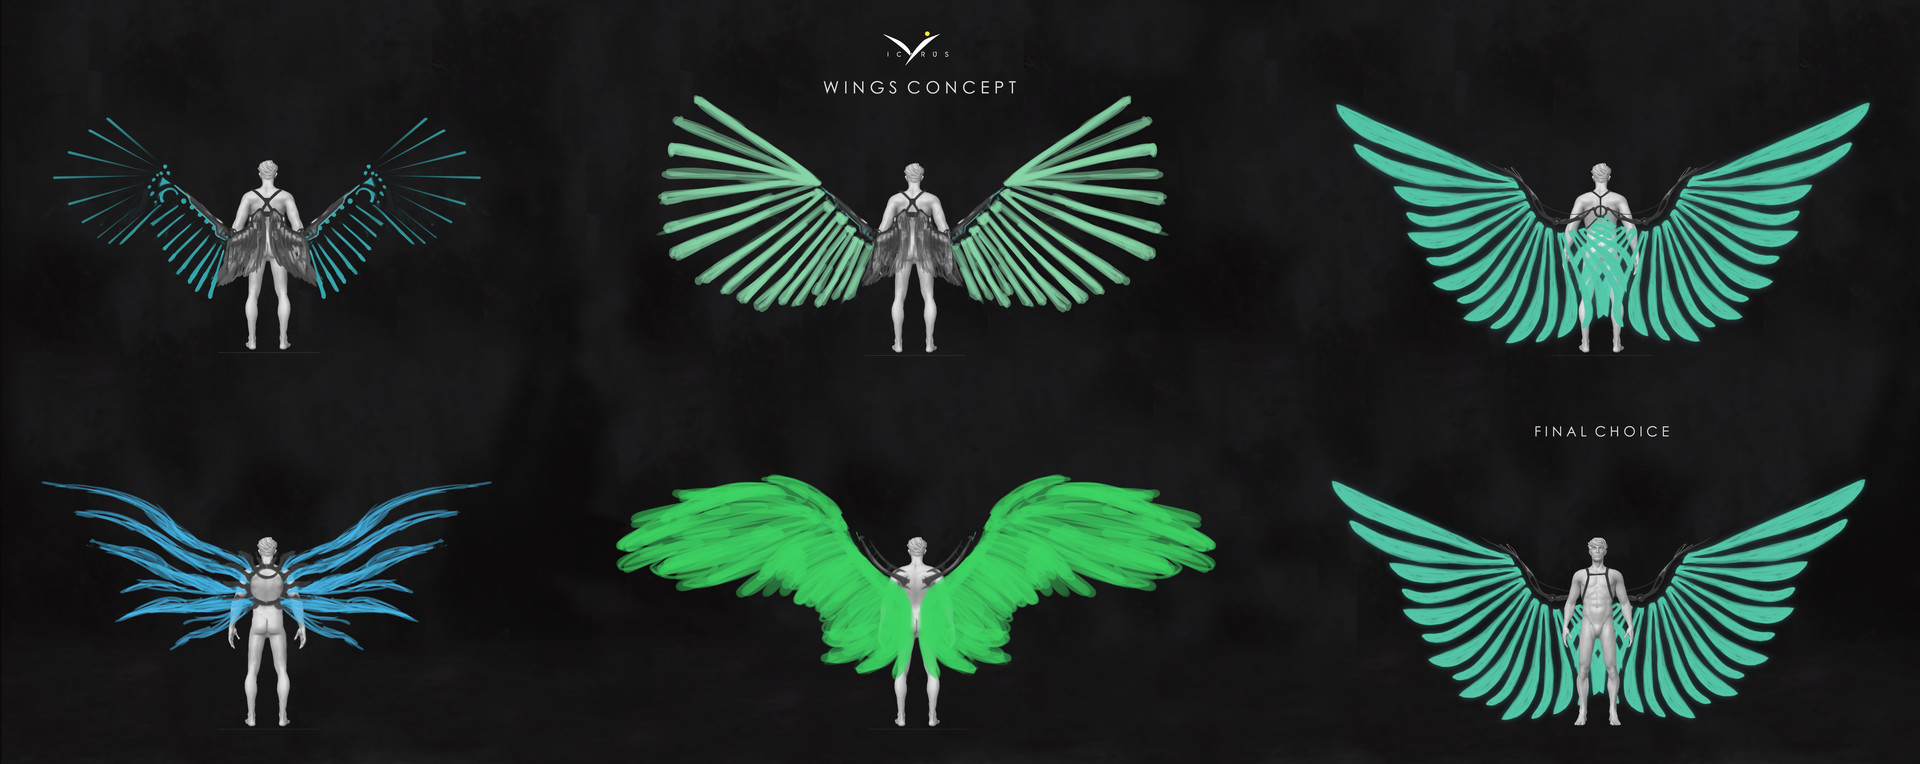 Alina feda wings concept 01